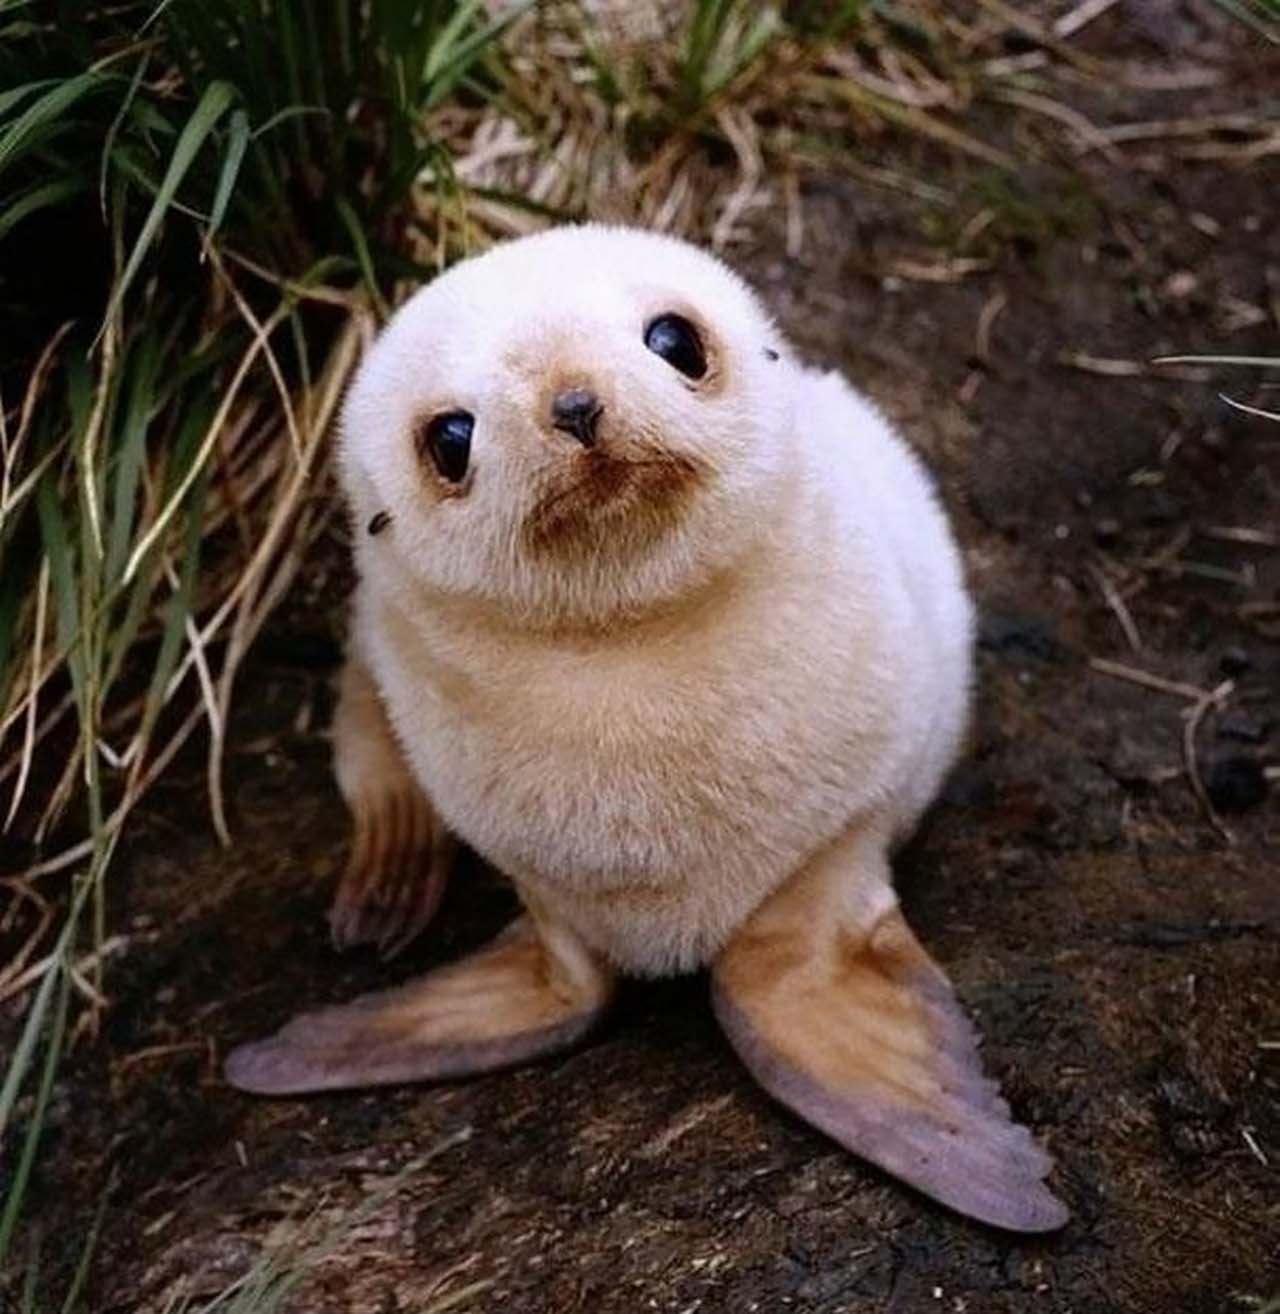 27 Adorable & Tiny Animals That Are Too Cute To Handle #3: Seal